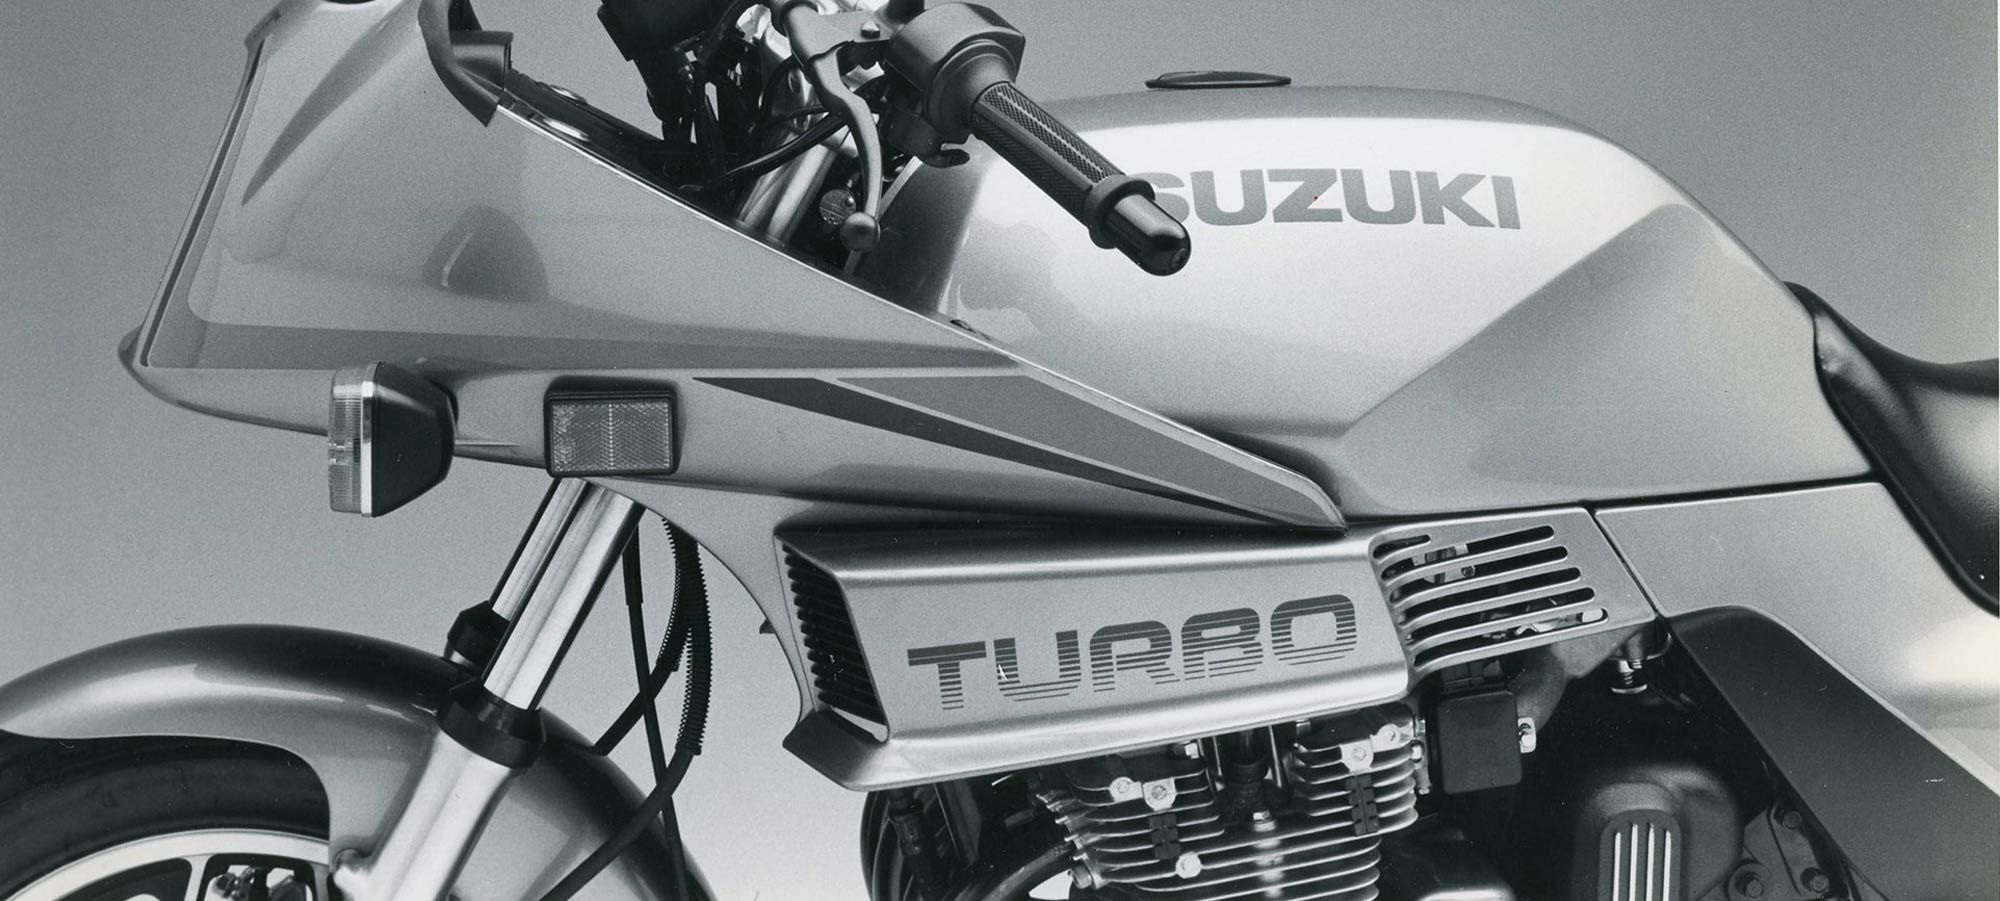 What Is Driving Suzuki Turbo Motorcycle Engine Patents? | Cycle World